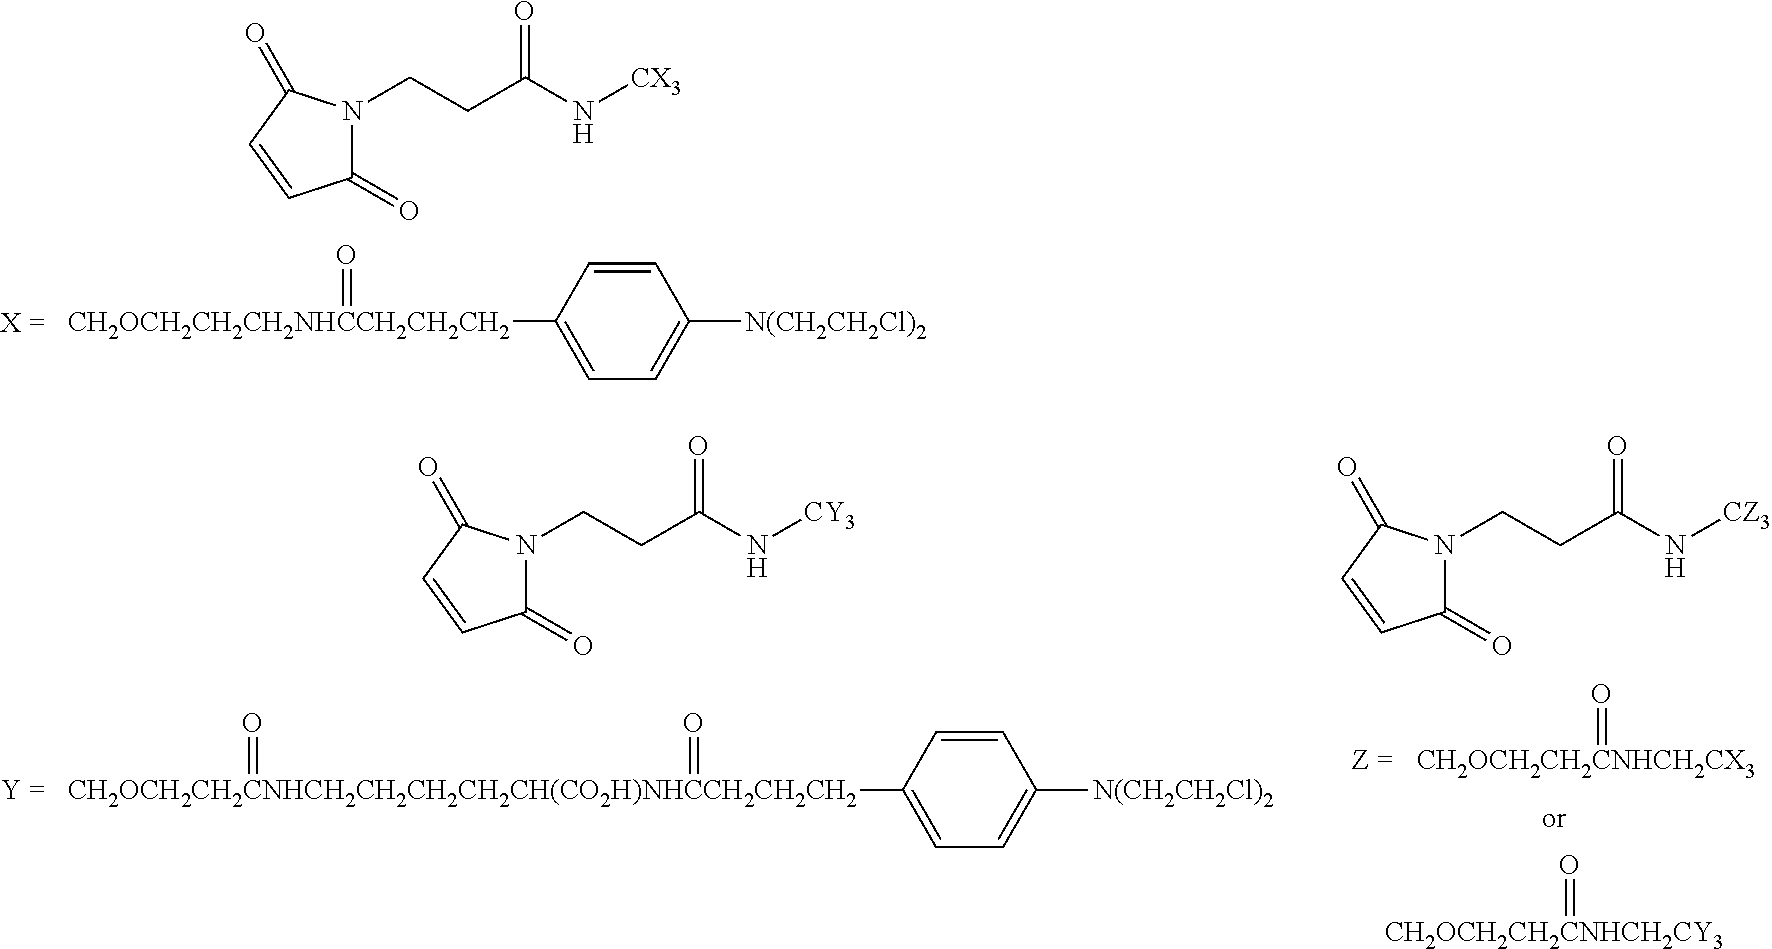 US20120148608A1 - Monomethylvaline compounds capable of